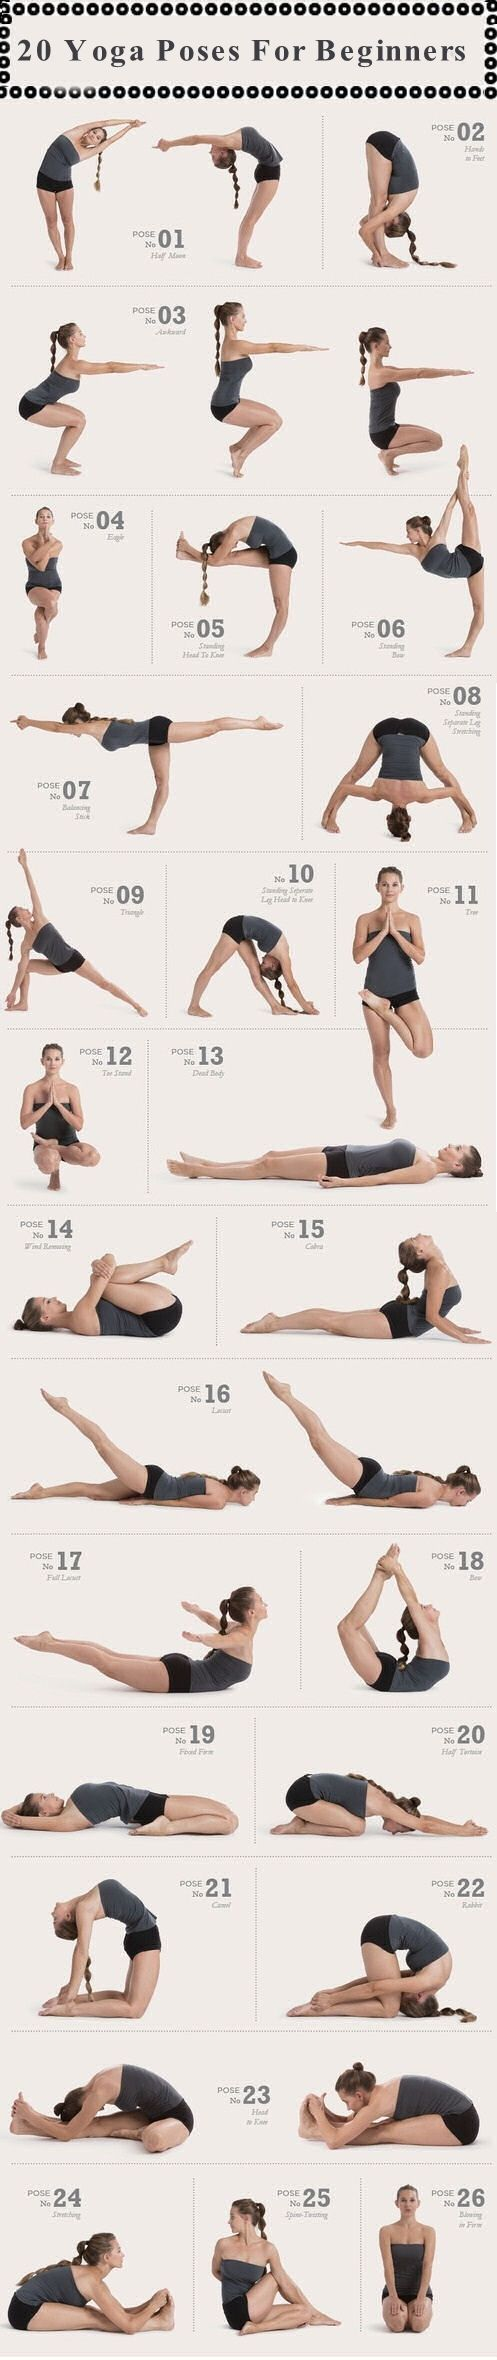 20 Yoga Poses For Beginners happiness fitness how to exercise yoga health diy exercise healthy living home exercise tutorials yoga poses self improvement exercising self help exercise tutorials yoga for beginners